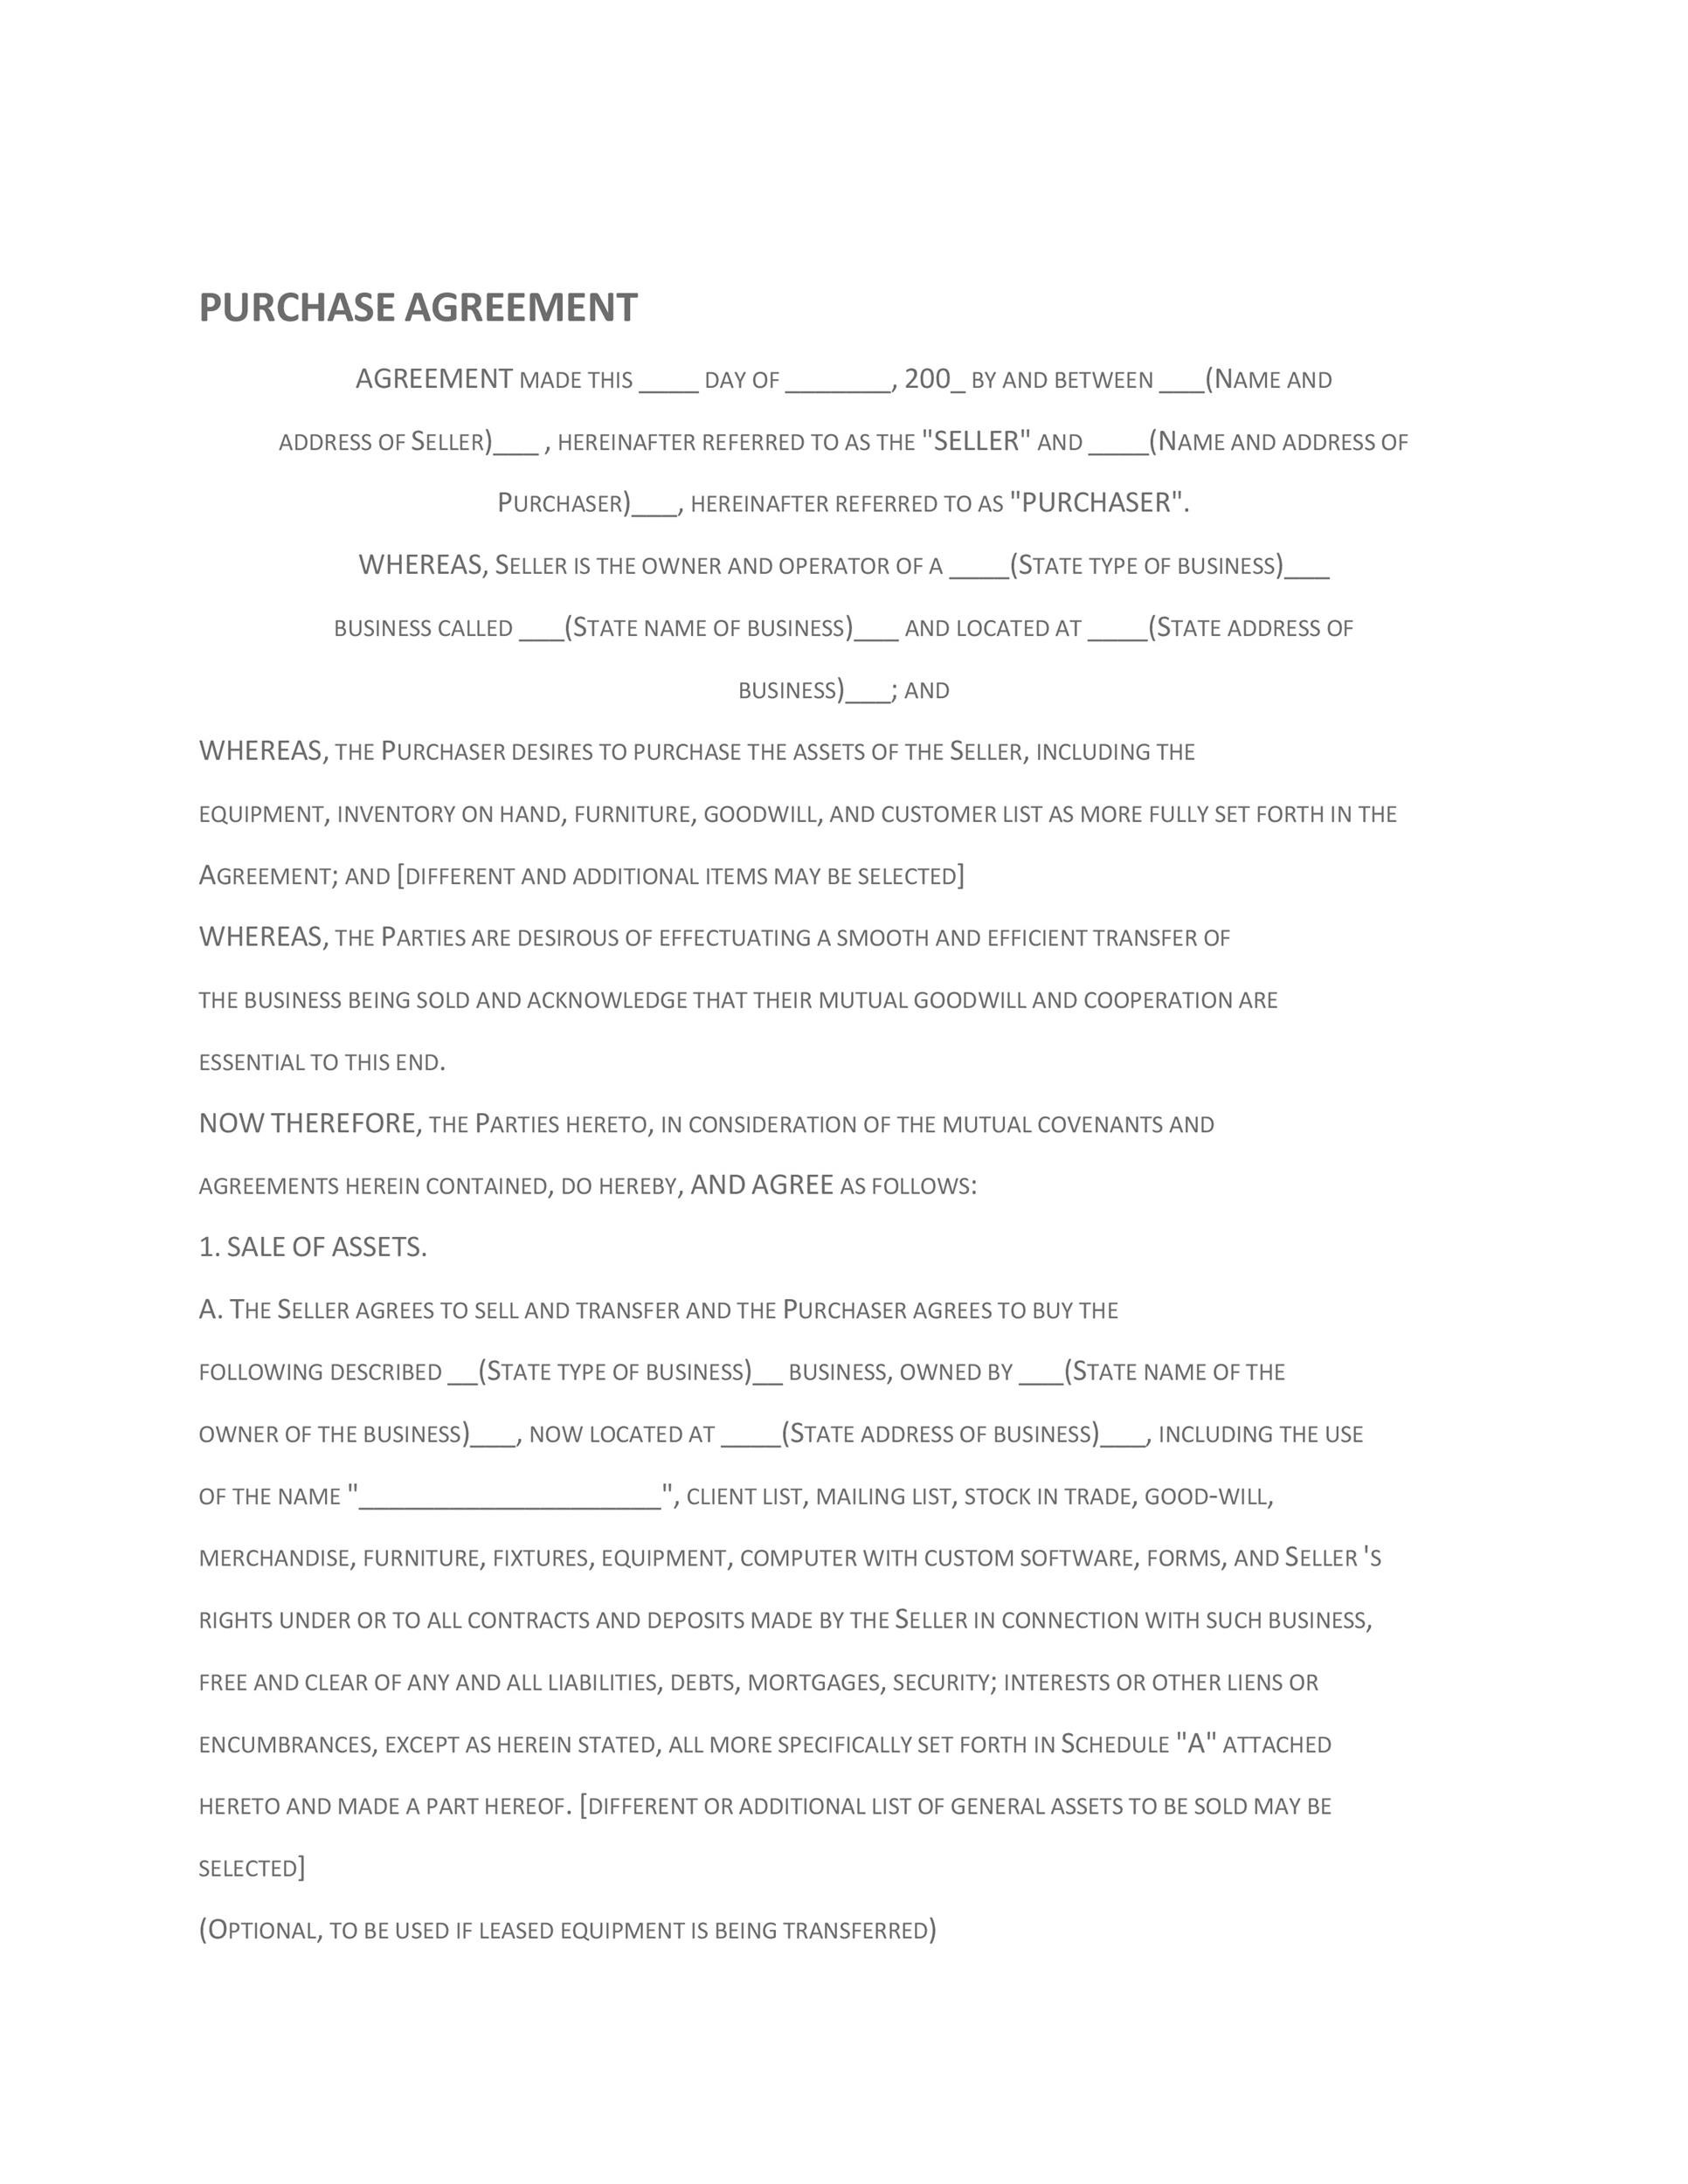 Purchase Agreement Template | 37 Simple Purchase Agreement Templates Real Estate Business